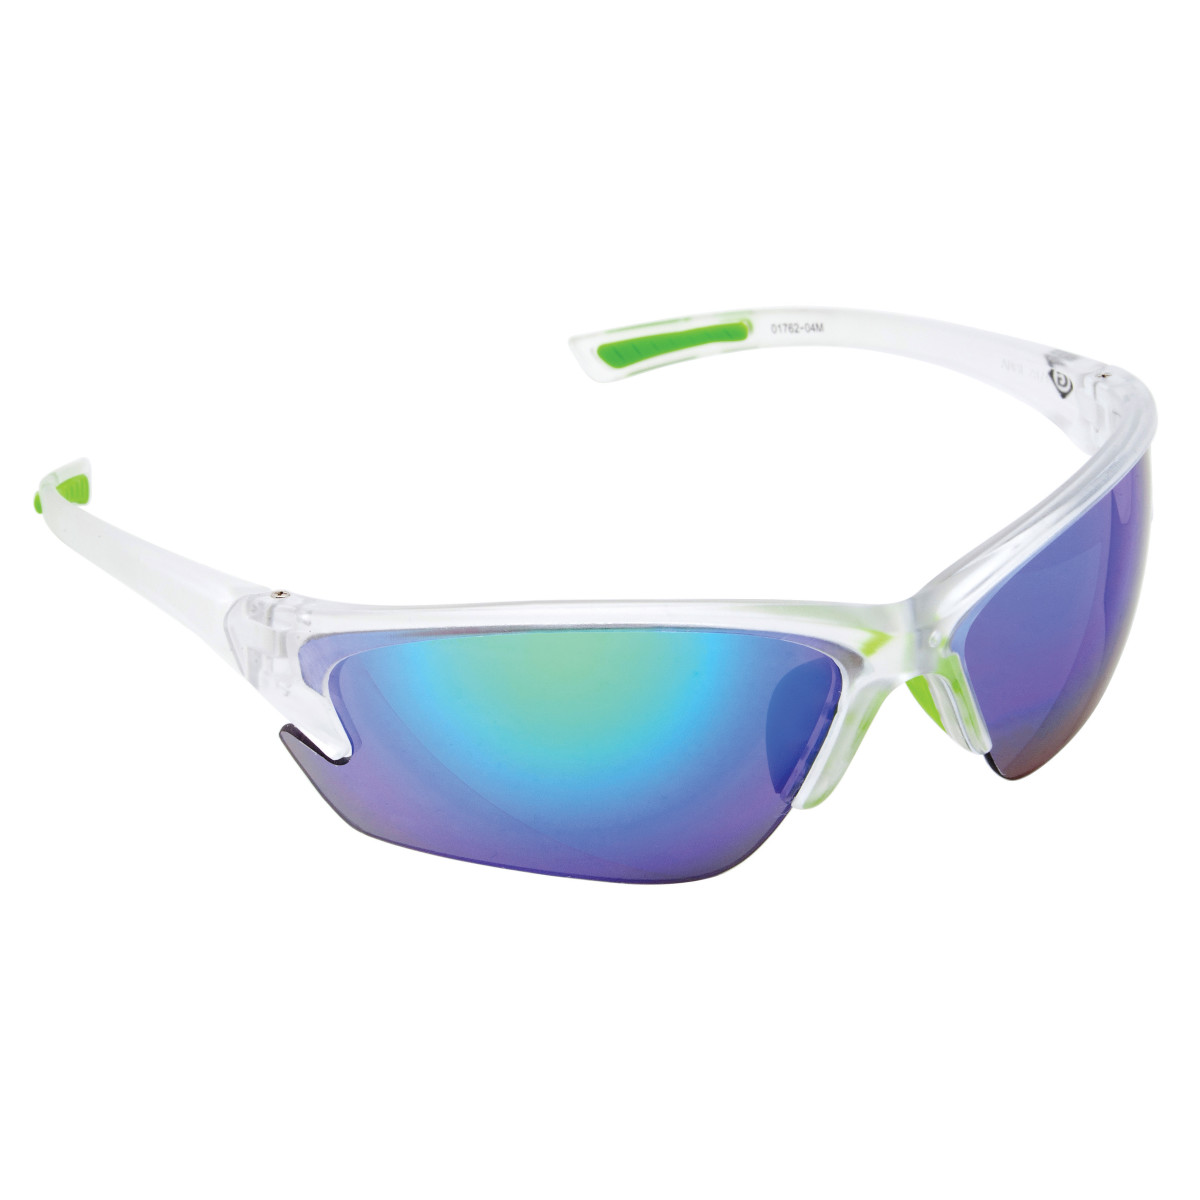 Greenlee 01762-04M Safety Glasses Pro View Mirror